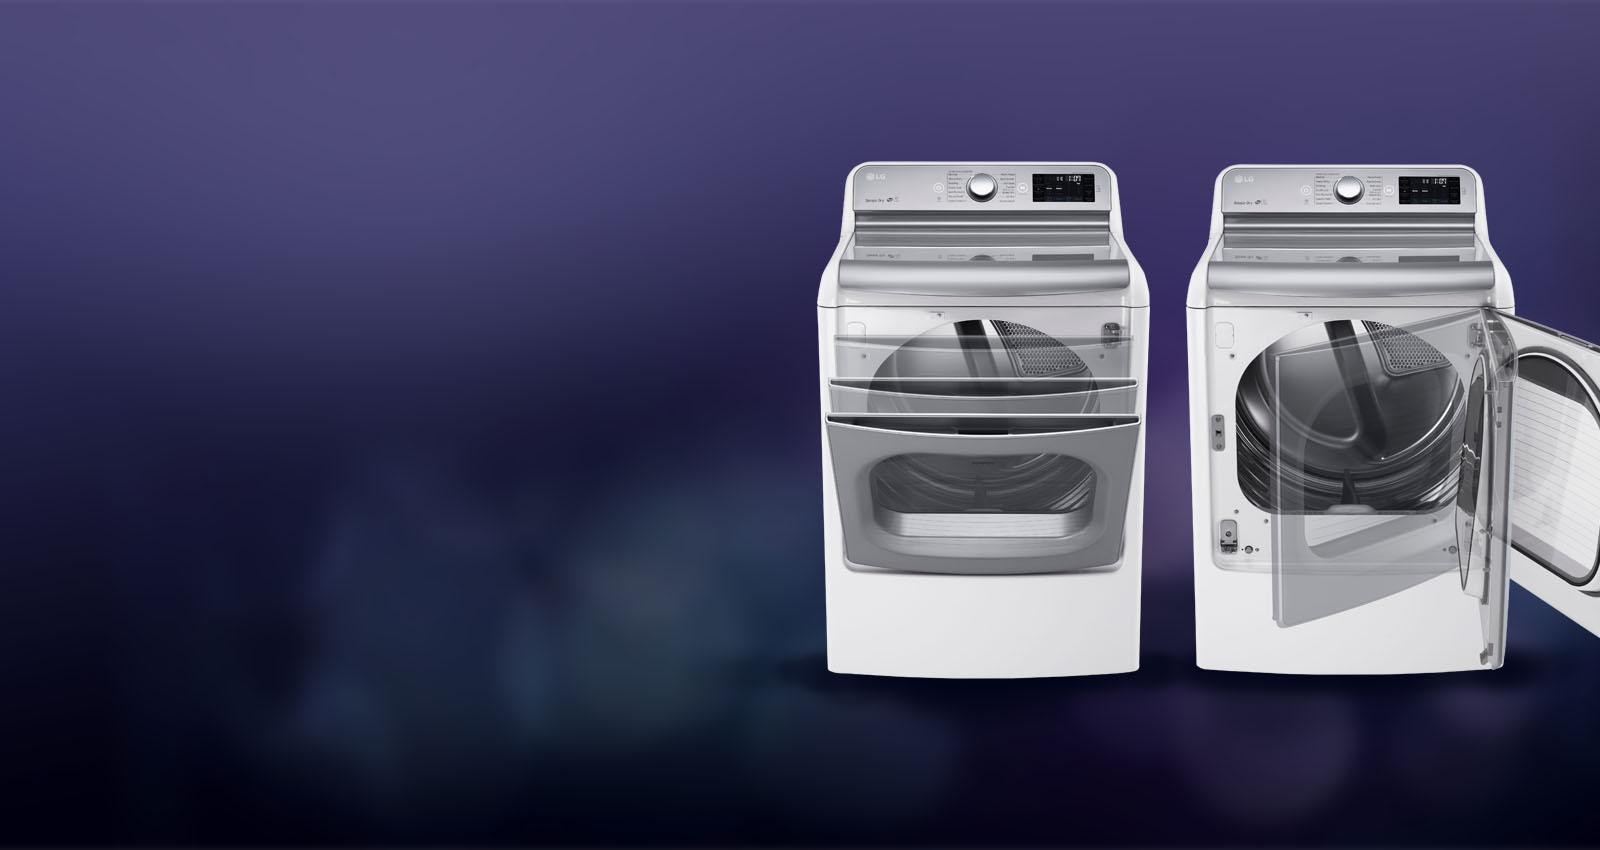 A look at how EasyLoad™ door of the LG DLEX7700 dryer functions & LG DLEX7700VE: Save $600 During Our Black Friday Sales Event | LG USA Pezcame.Com